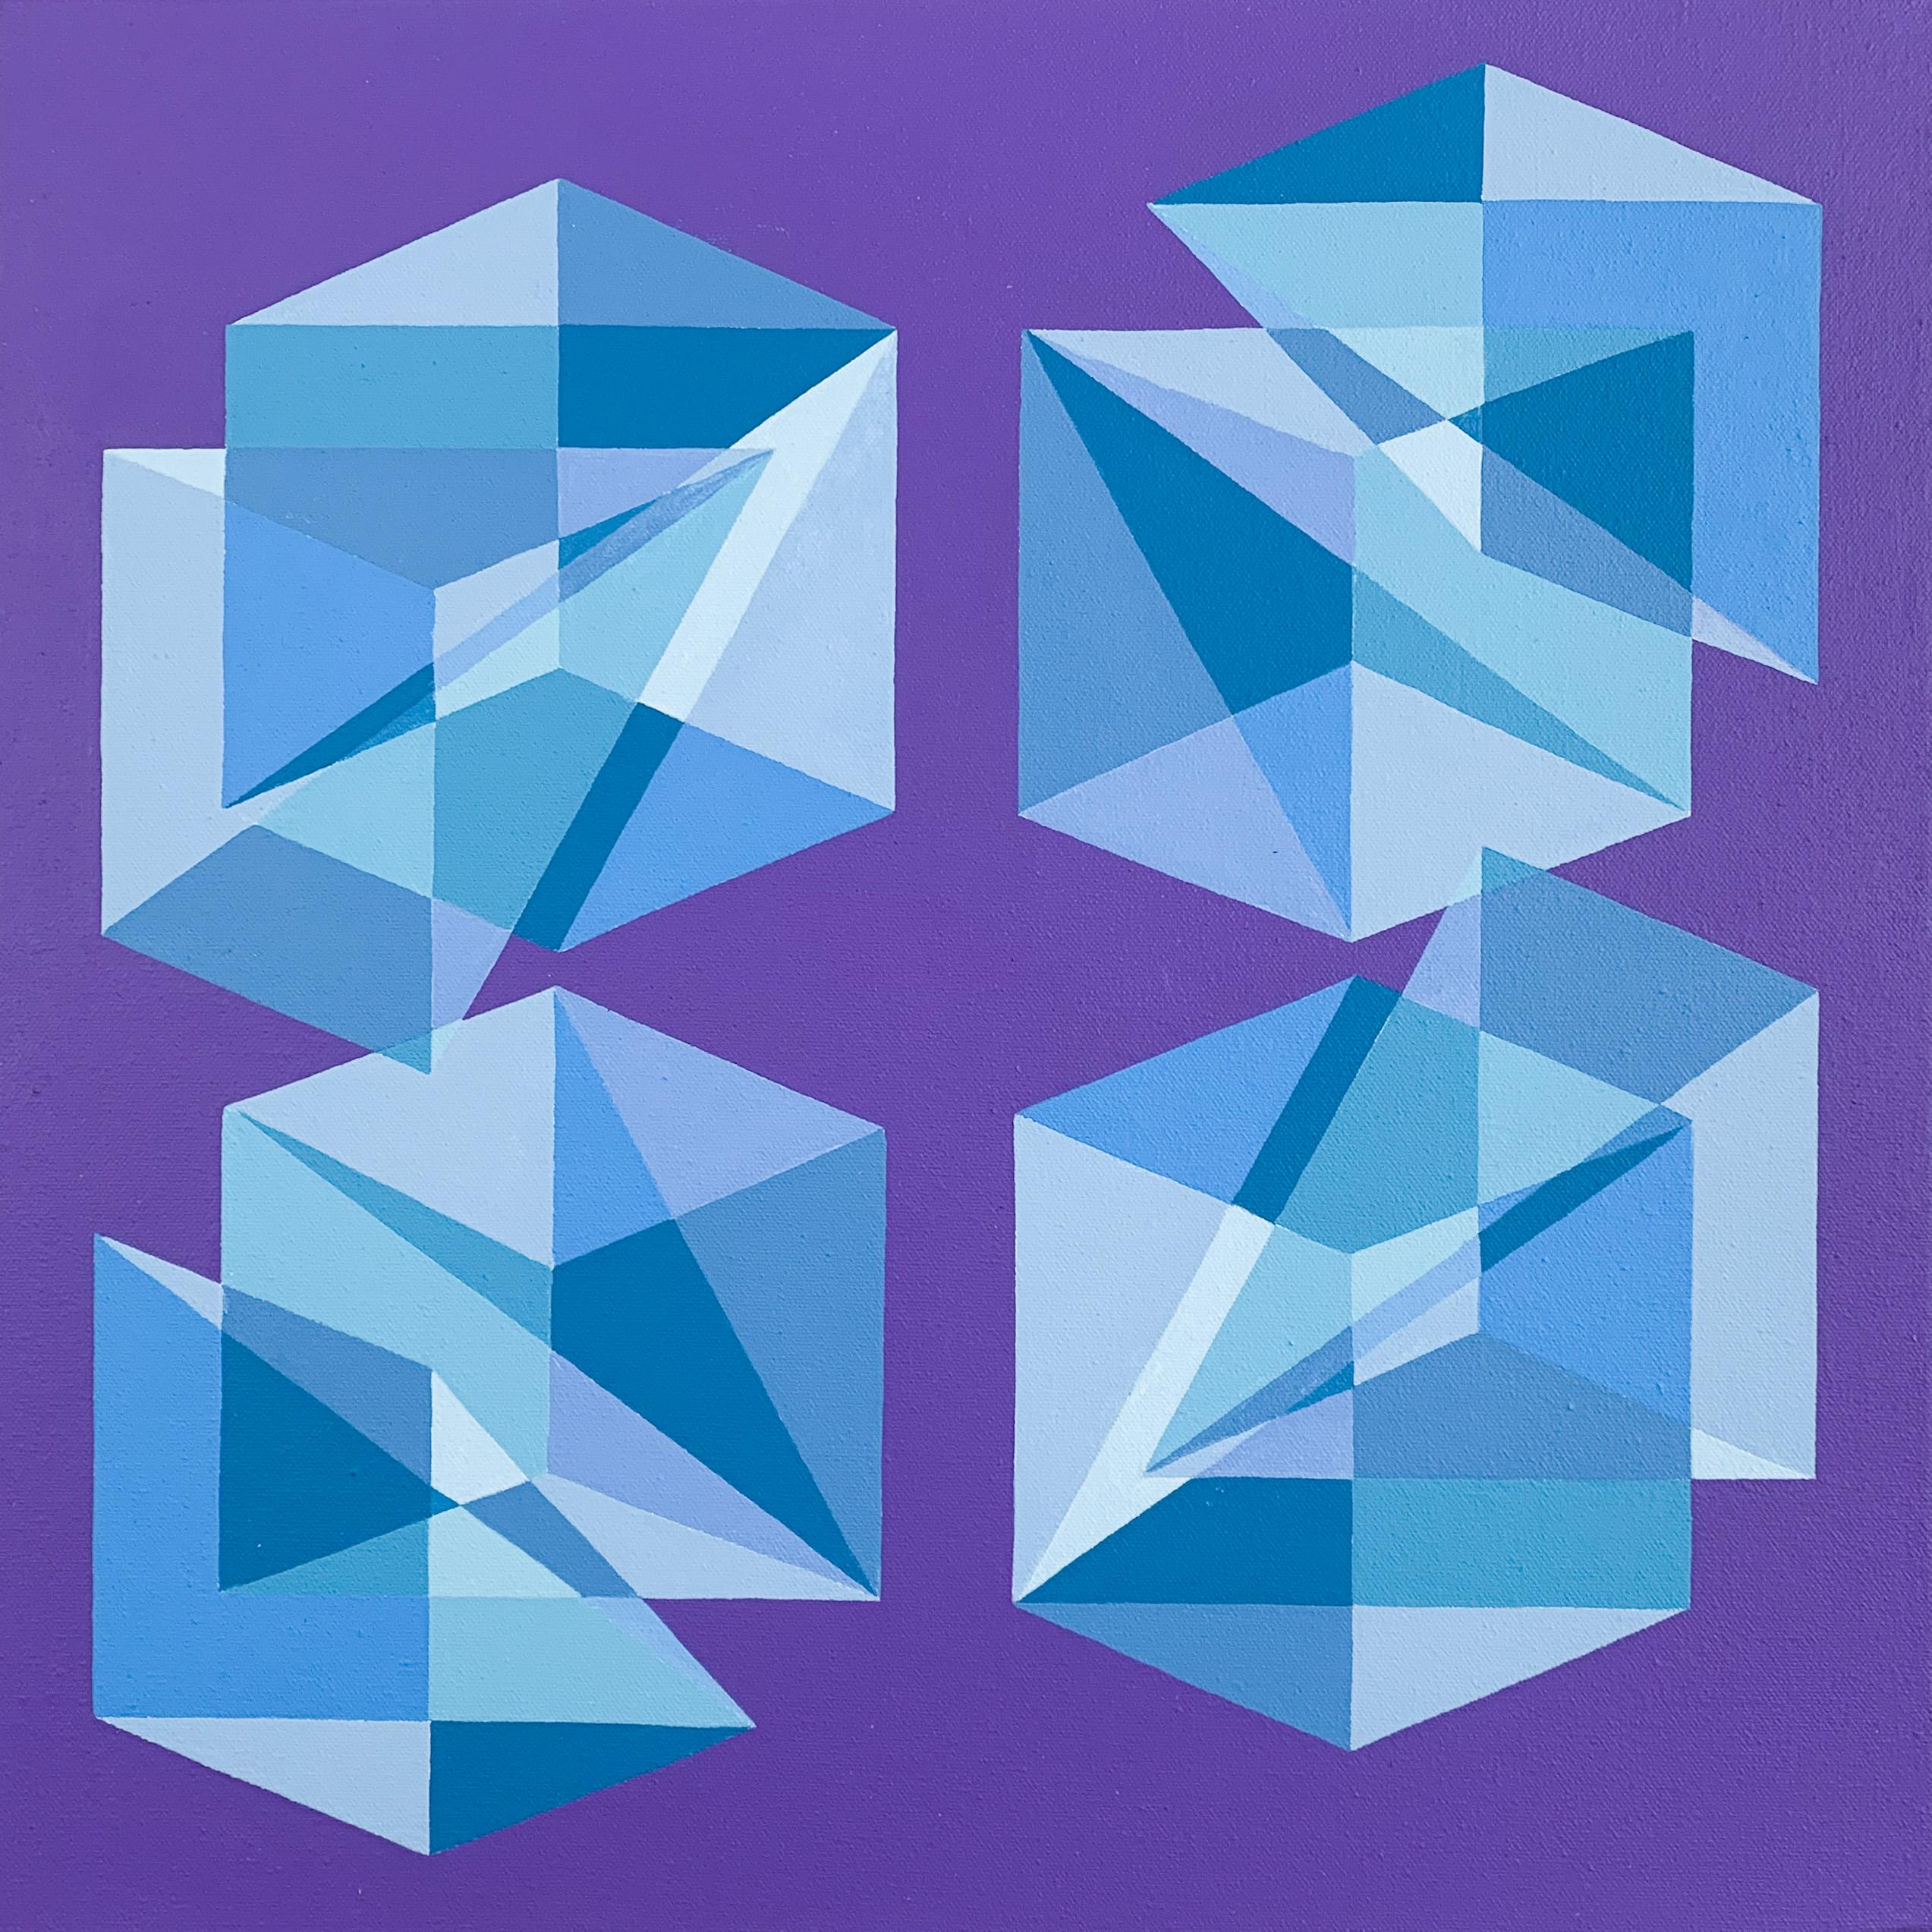 Contemporary geometric abstract Op Art painting w/ blue & purple cubes, pyramids